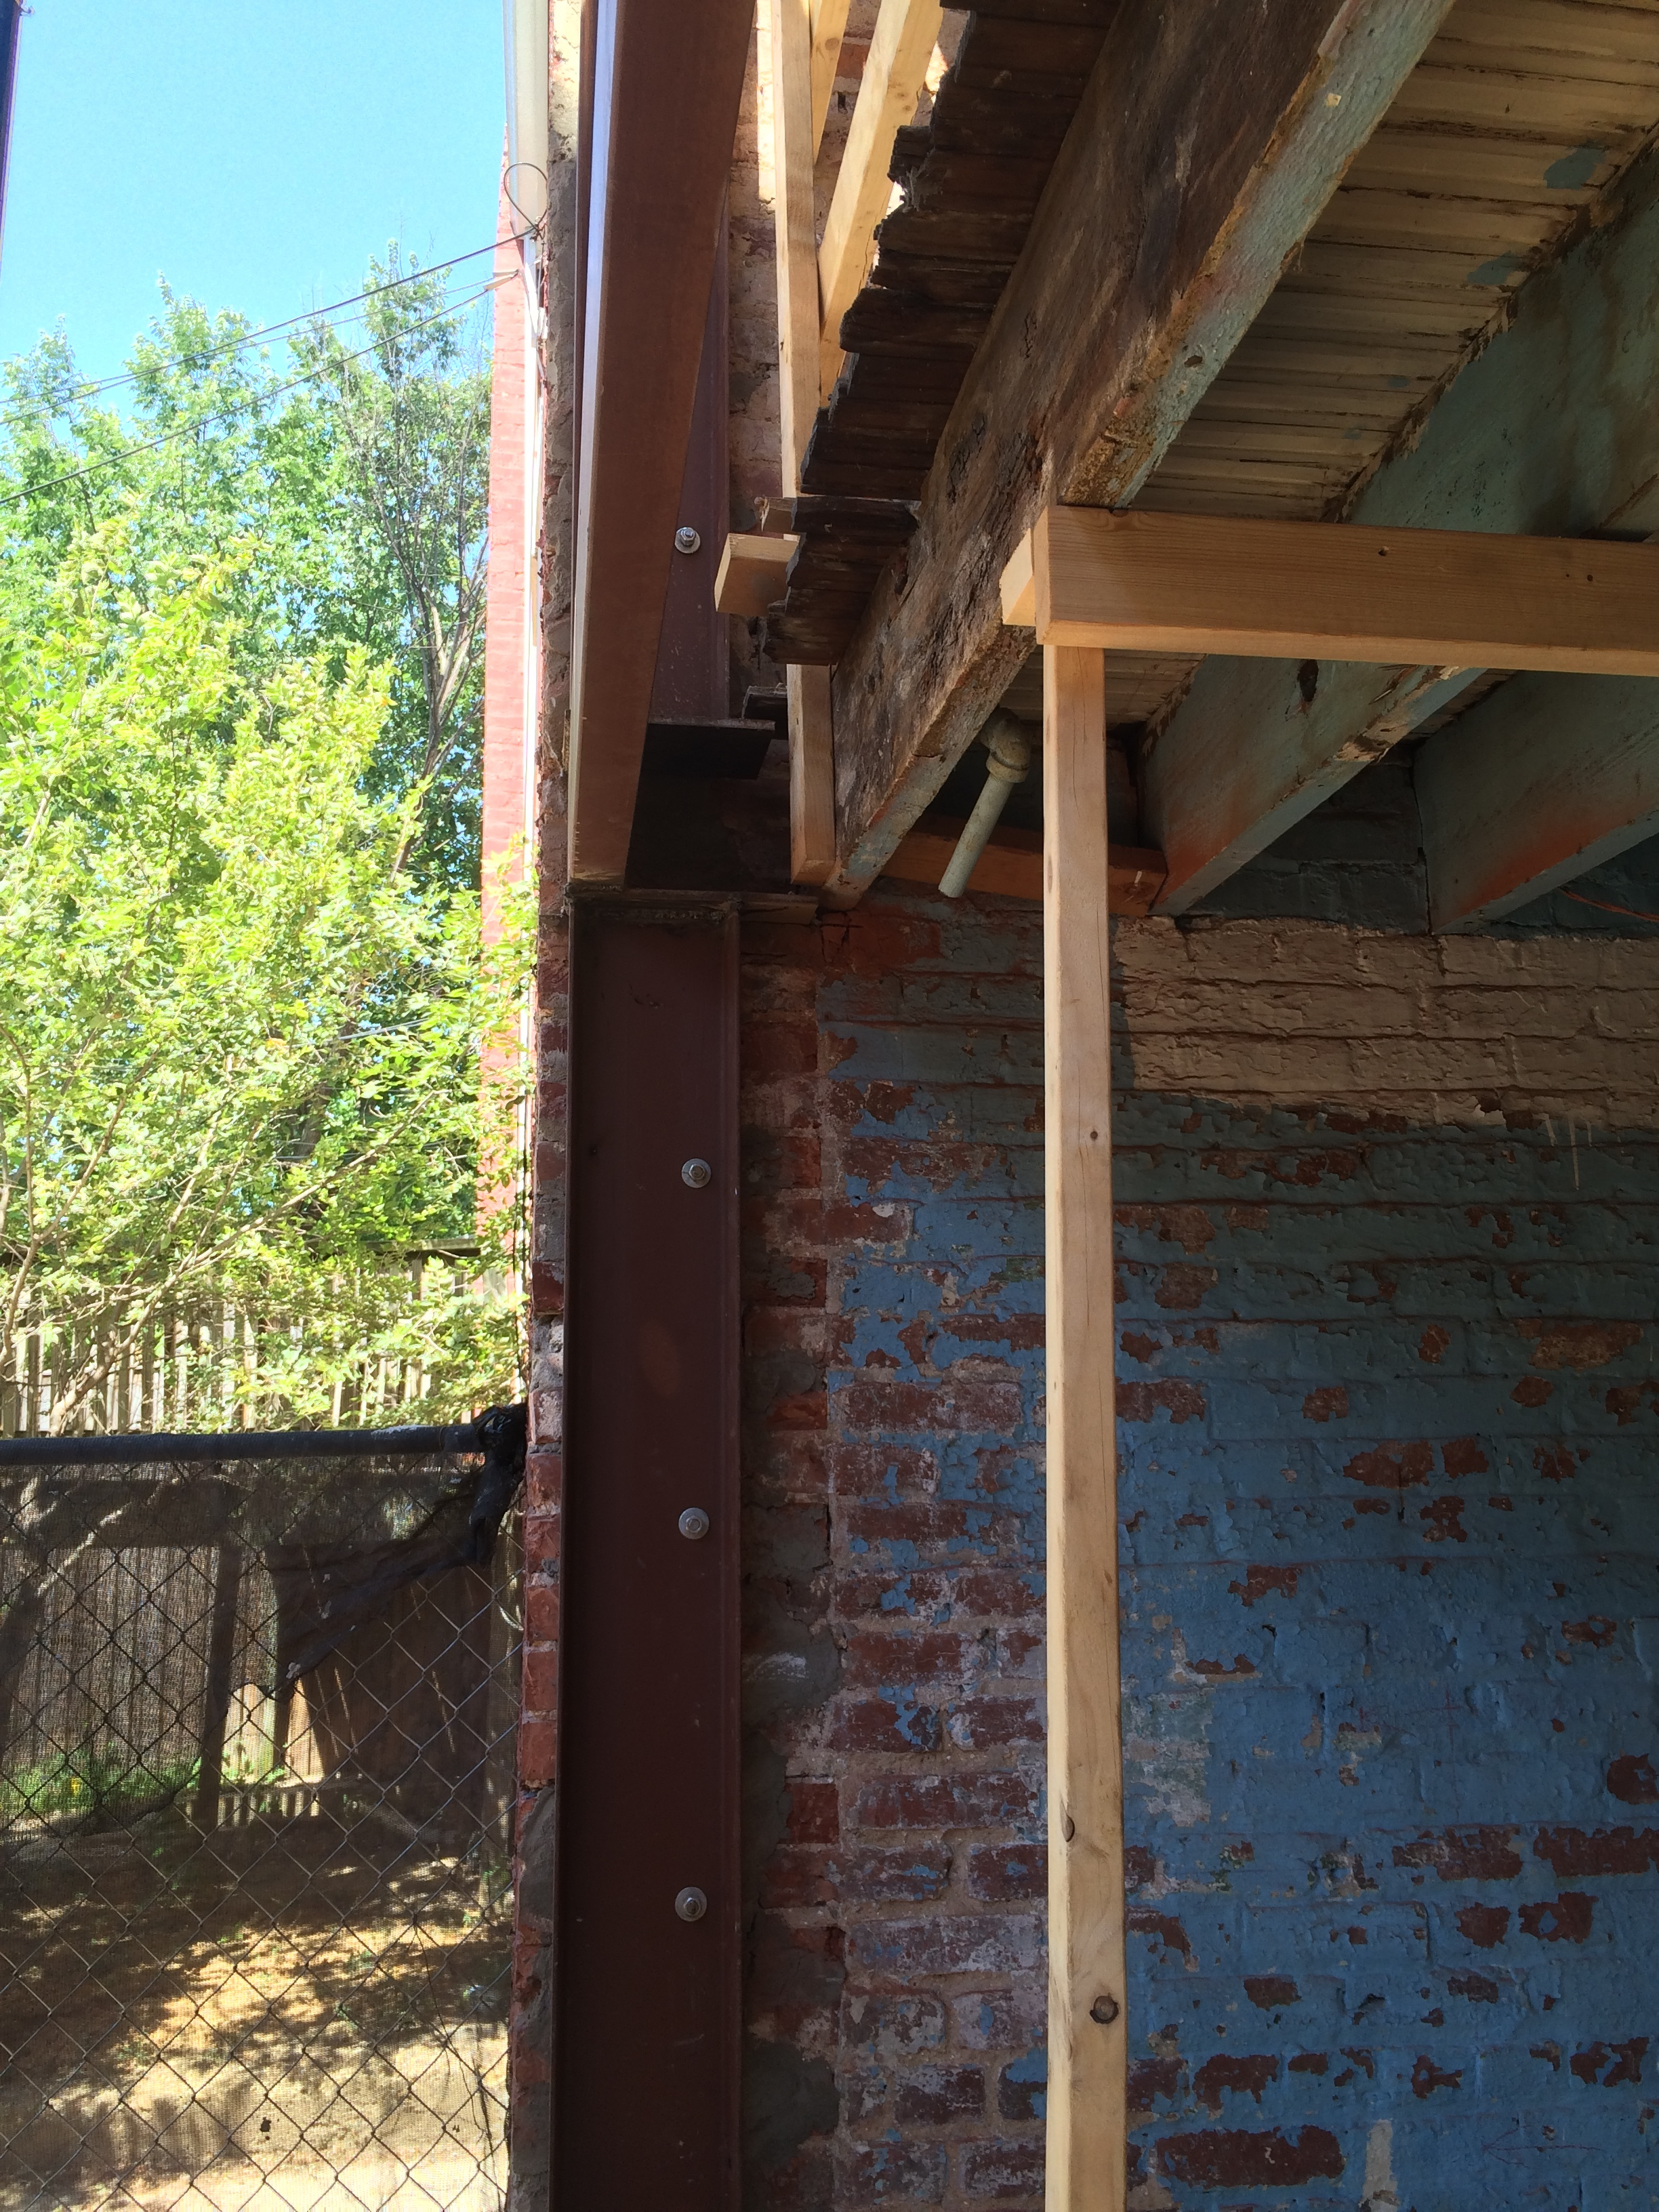 New steel frame installed at basement level. The bolts have been set into the old brick wall with epoxy to create a stronger bond with the old brick.